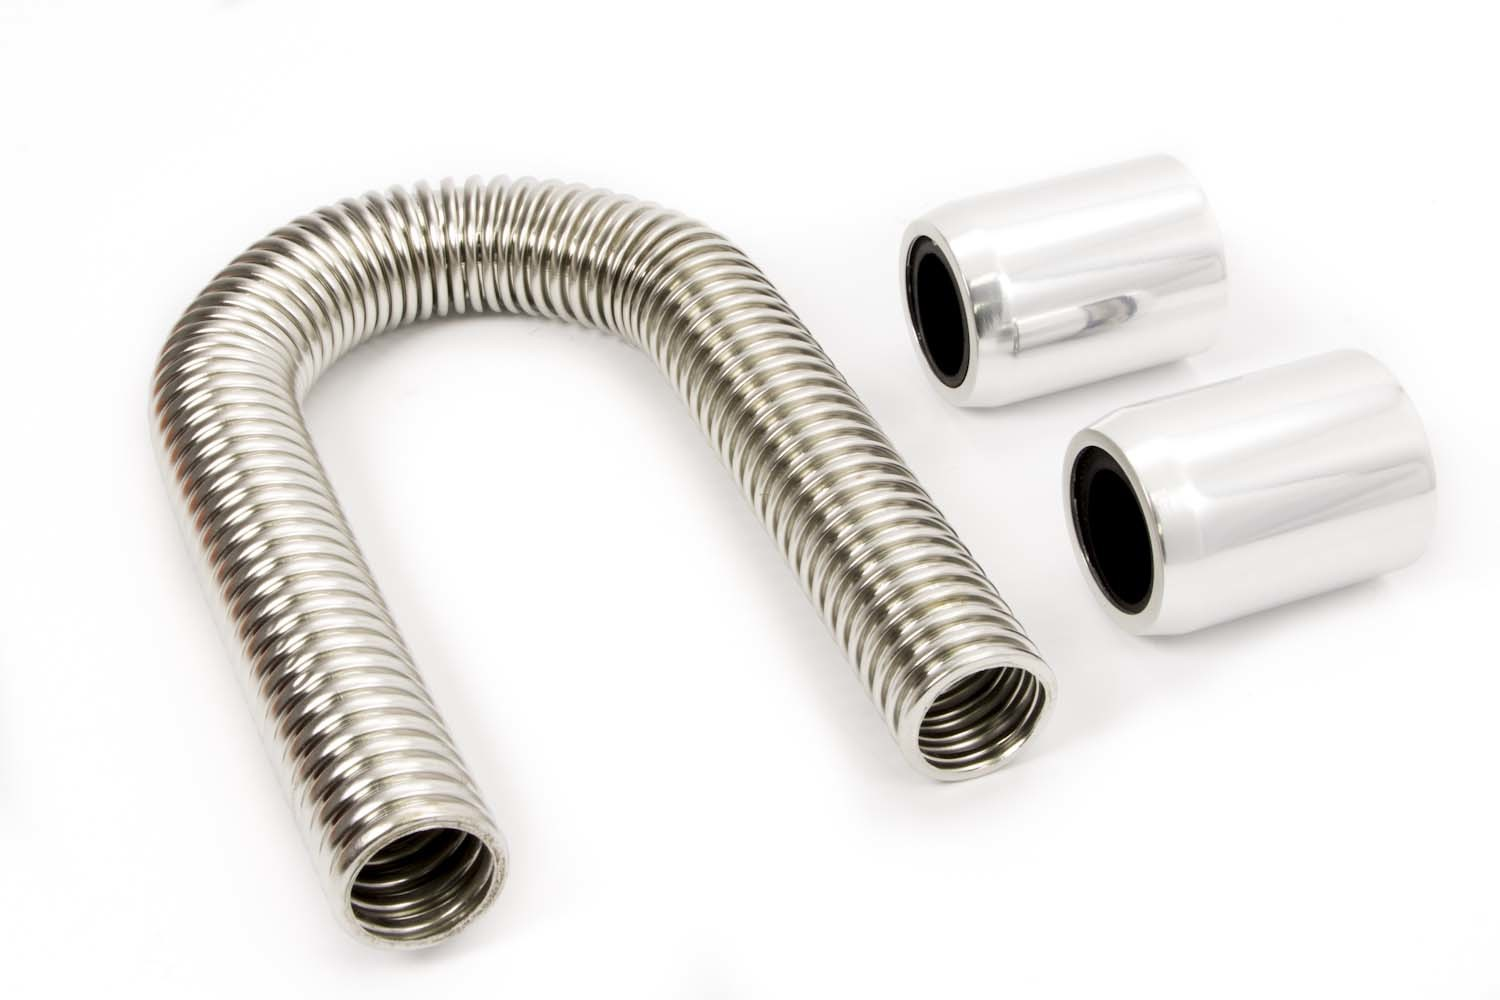 Racing Power Co-packaged 48in Stainless Hose Kit w/Polished Ends